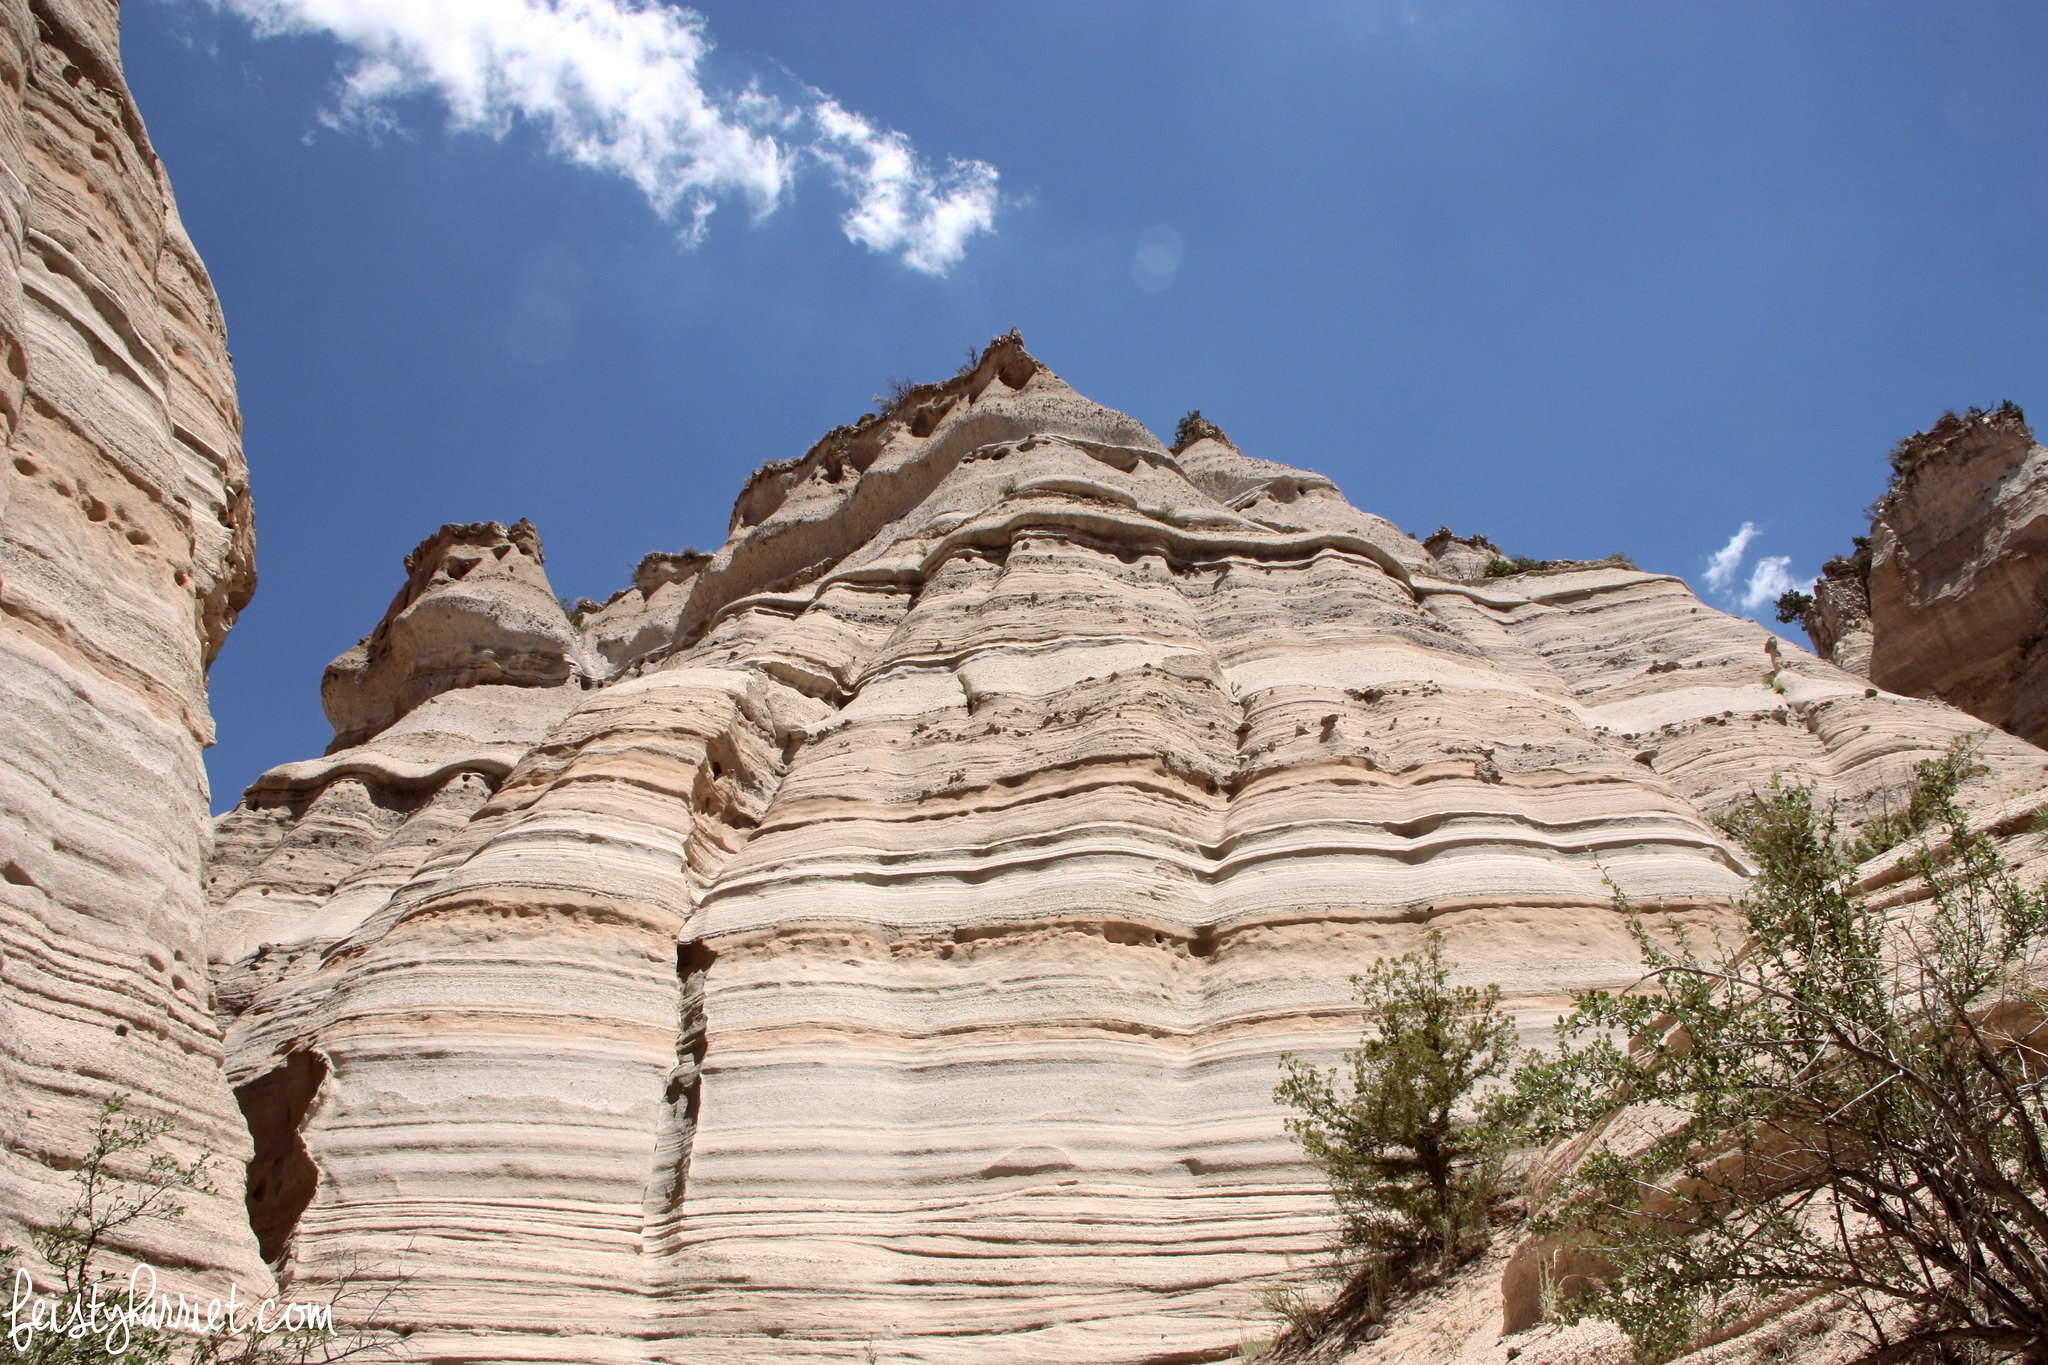 Kasha-Katuwe Tent Rocks NM_feistyharriet_July 2016 (3)